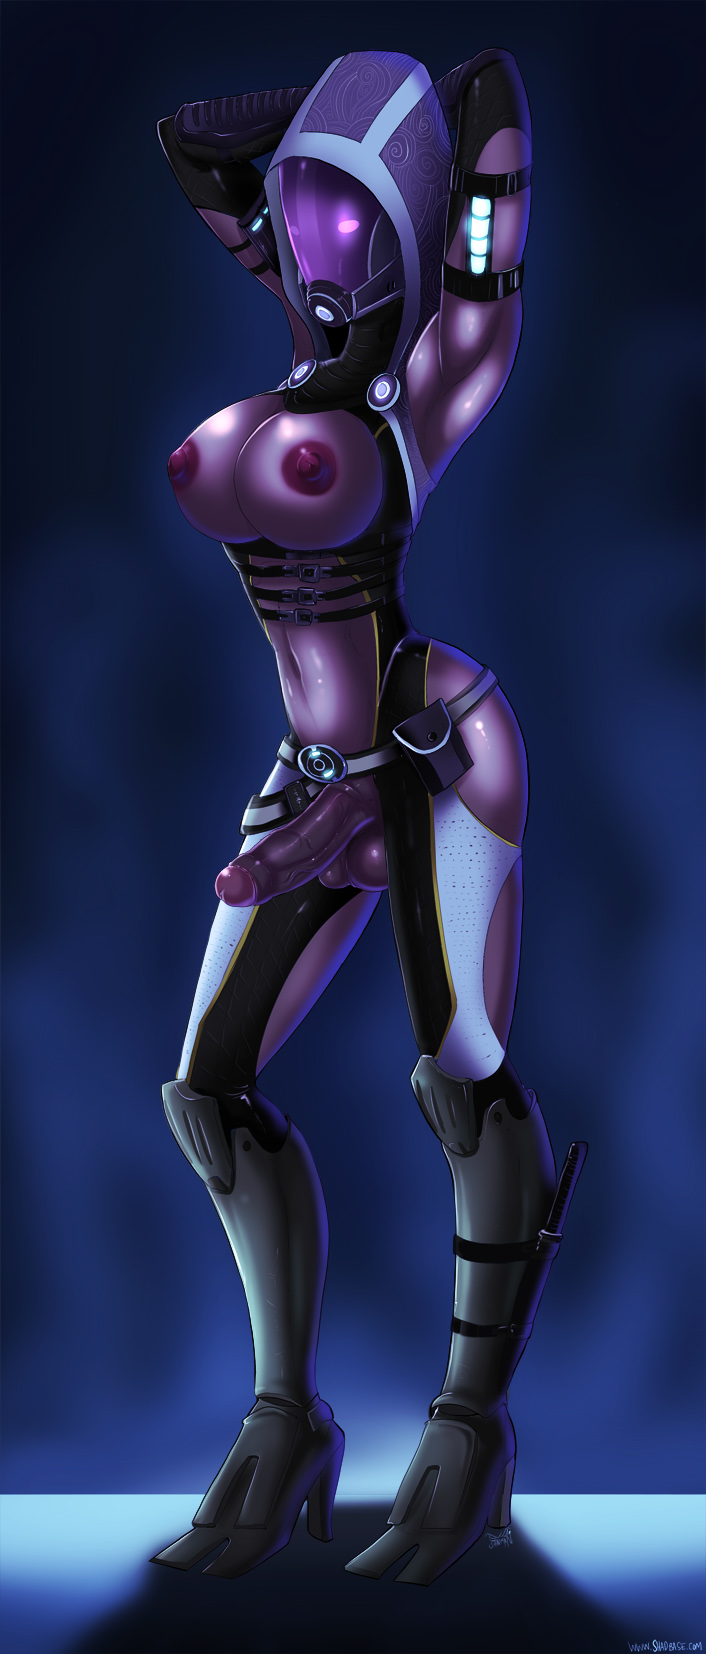 alien balls big_breasts big_penis breasts dickgirl erection female futa futanari mask mass_effect nude penis purple_skin quarian solo suite tali'zorah_nar_rayya testicles therealshadman